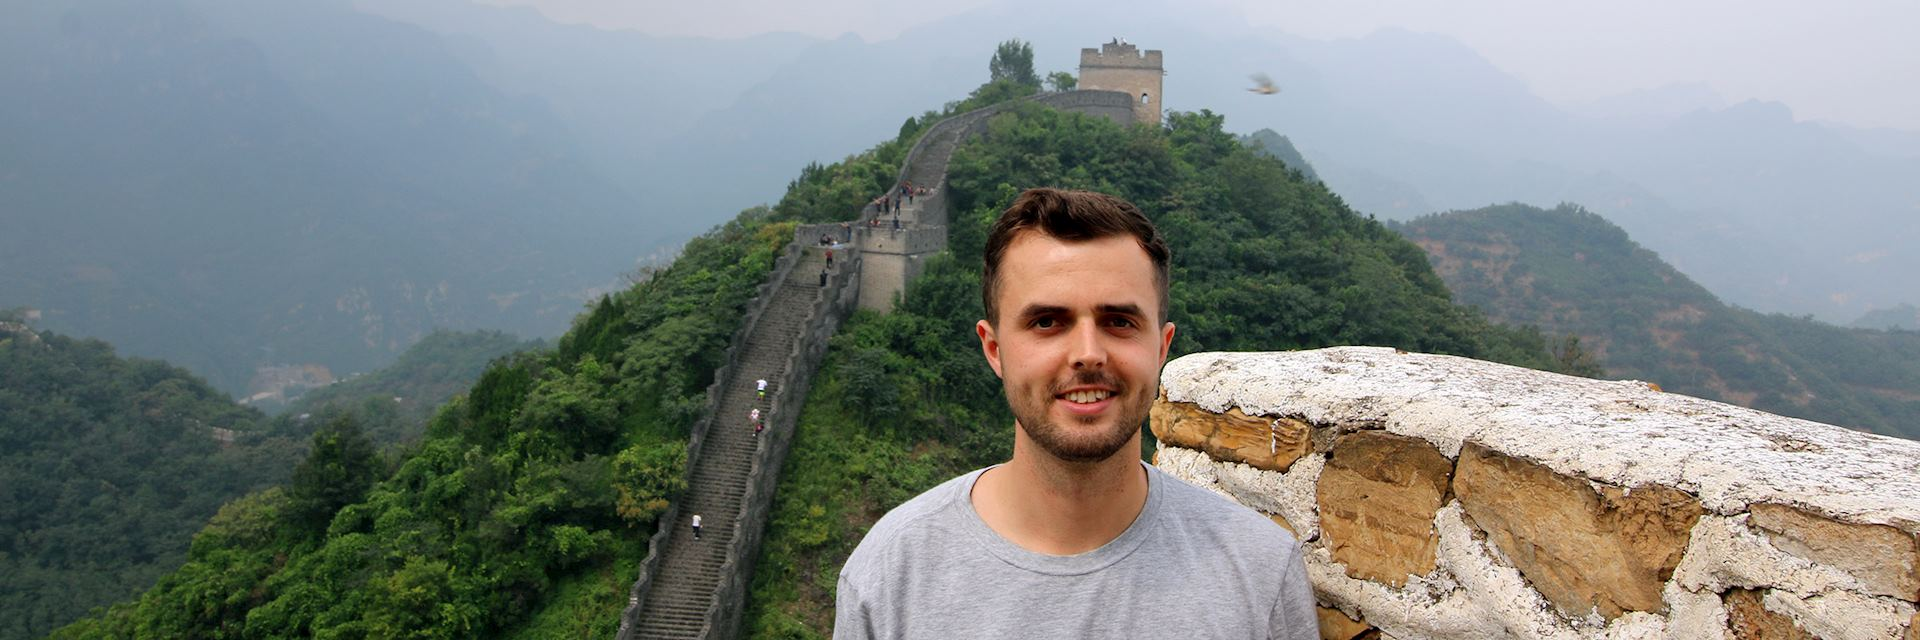 Duncan visiting the Great Wall at Huangyaguan, China